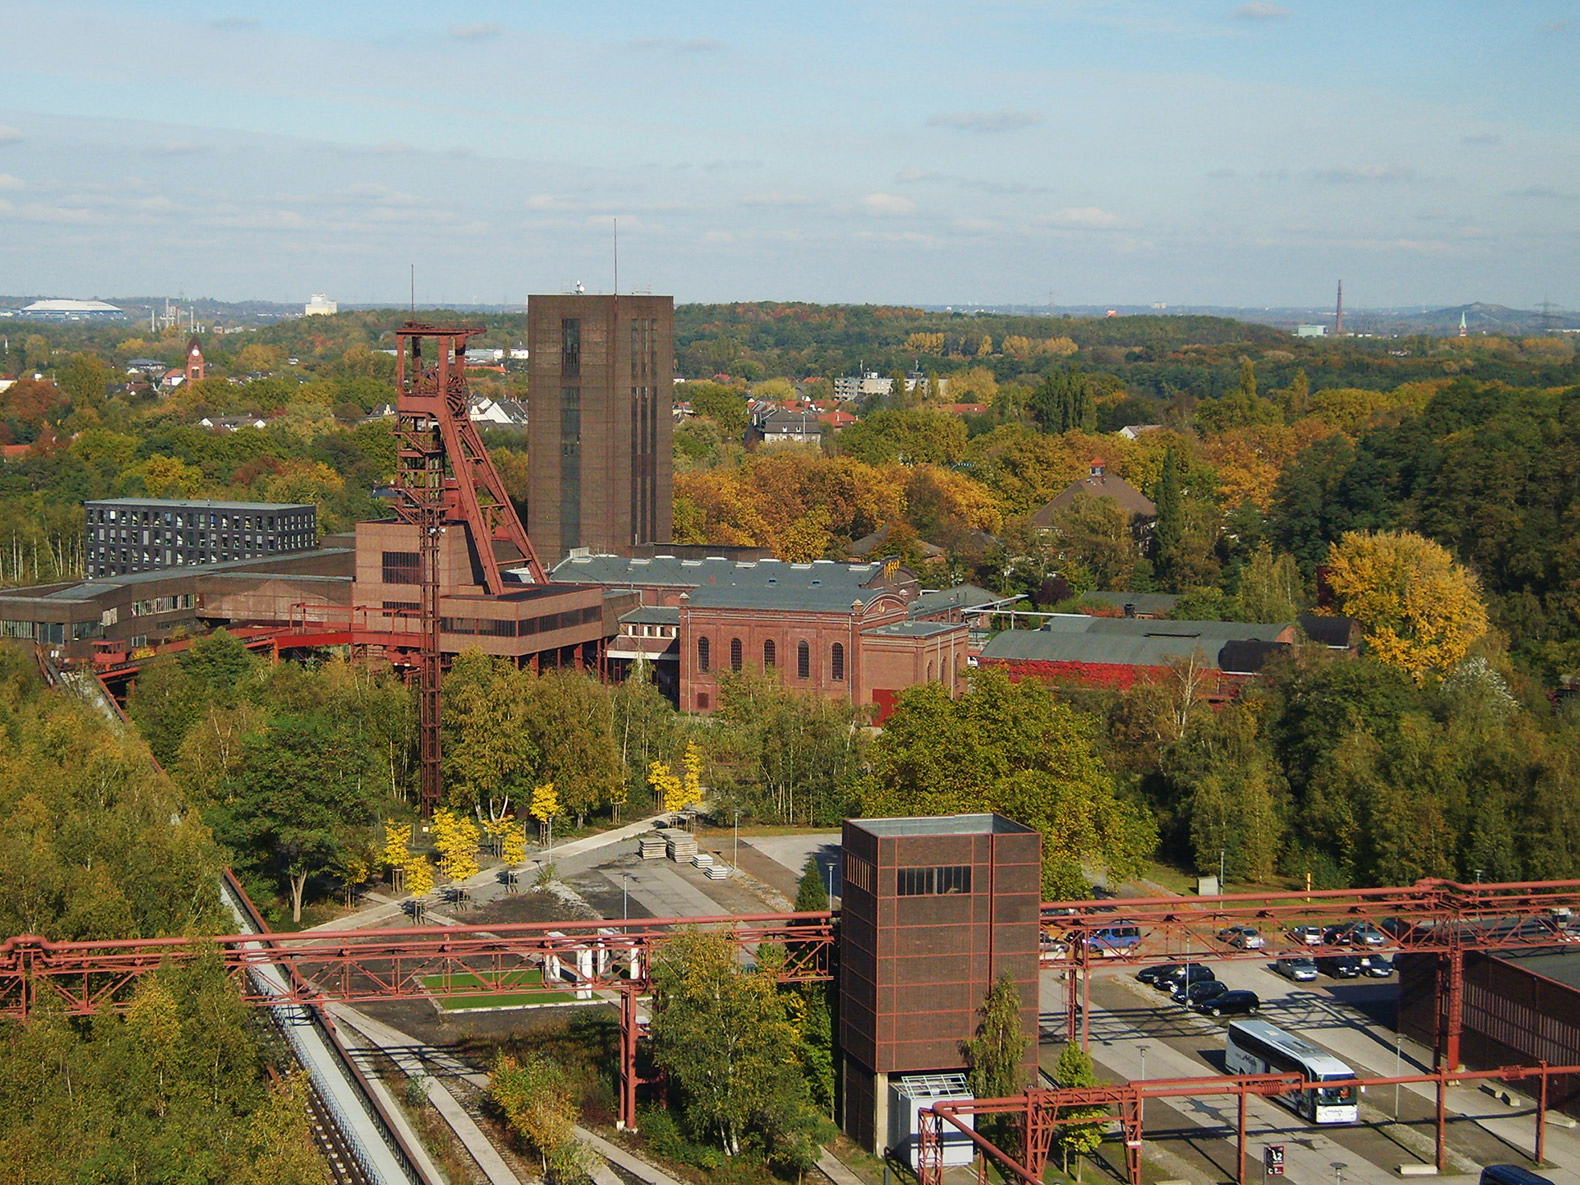 Industrial Area of Zeche Zollverein, Essen, Germany. Photograph courtesy of CC-BY-SA-2.5, Rainer Halama